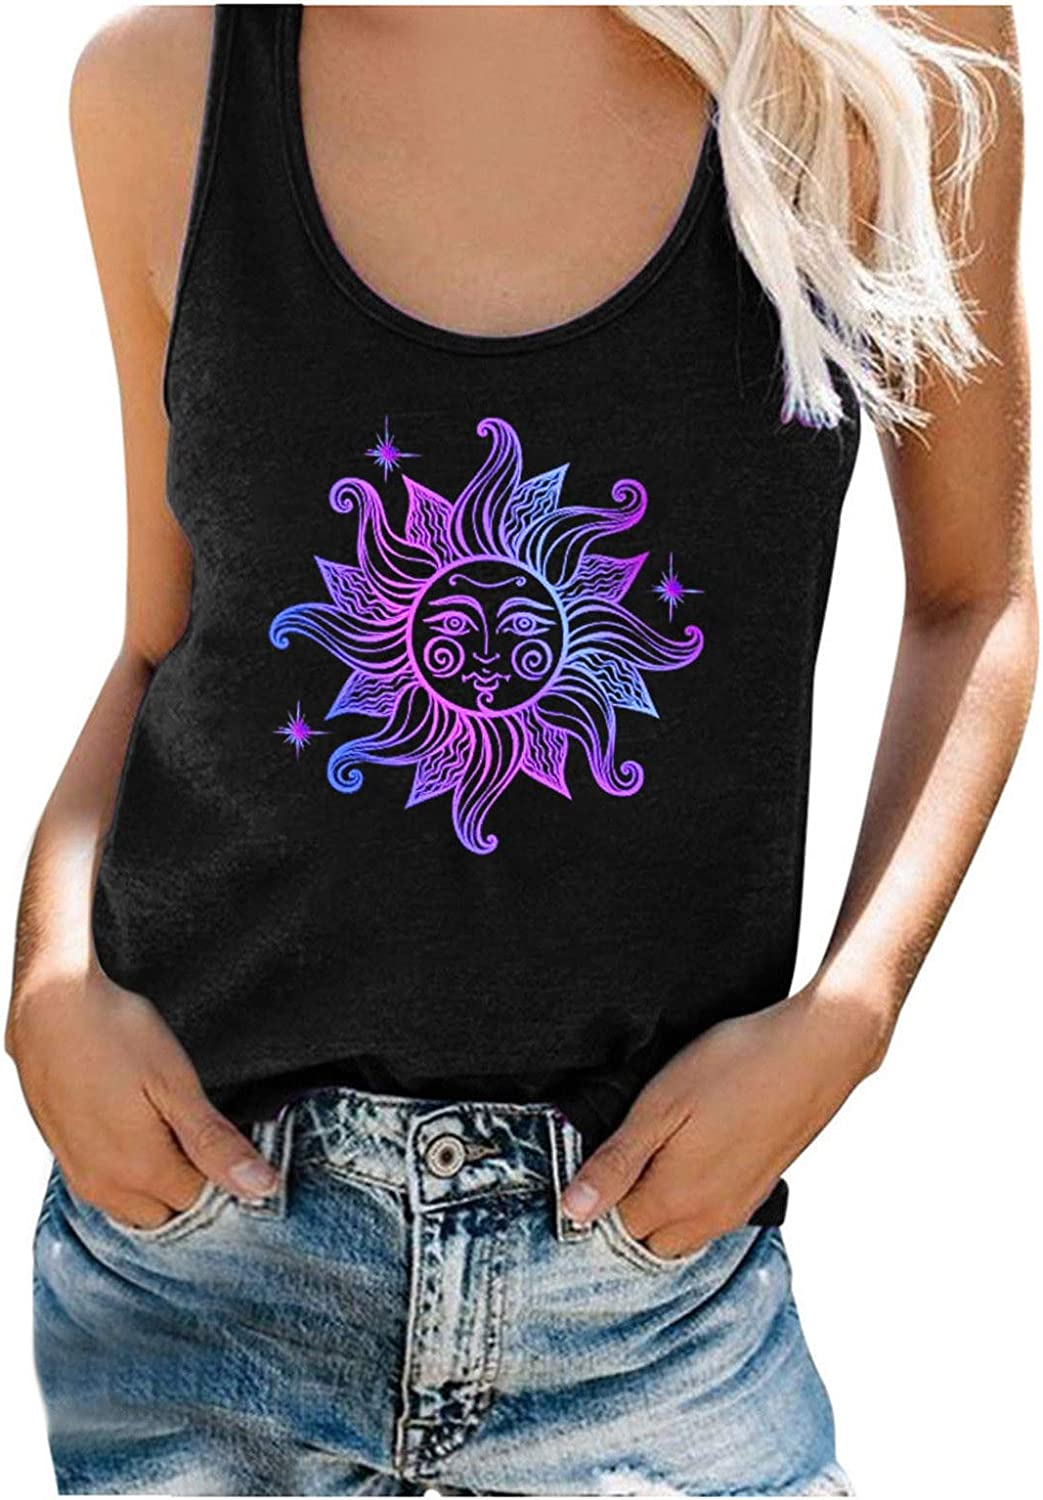 Women Tank Tops,Fashion Women's Casual Summer Printed O Neck Sleeveless Workout Blouse T-Shirt Top Tank Soft Camisoles Tee